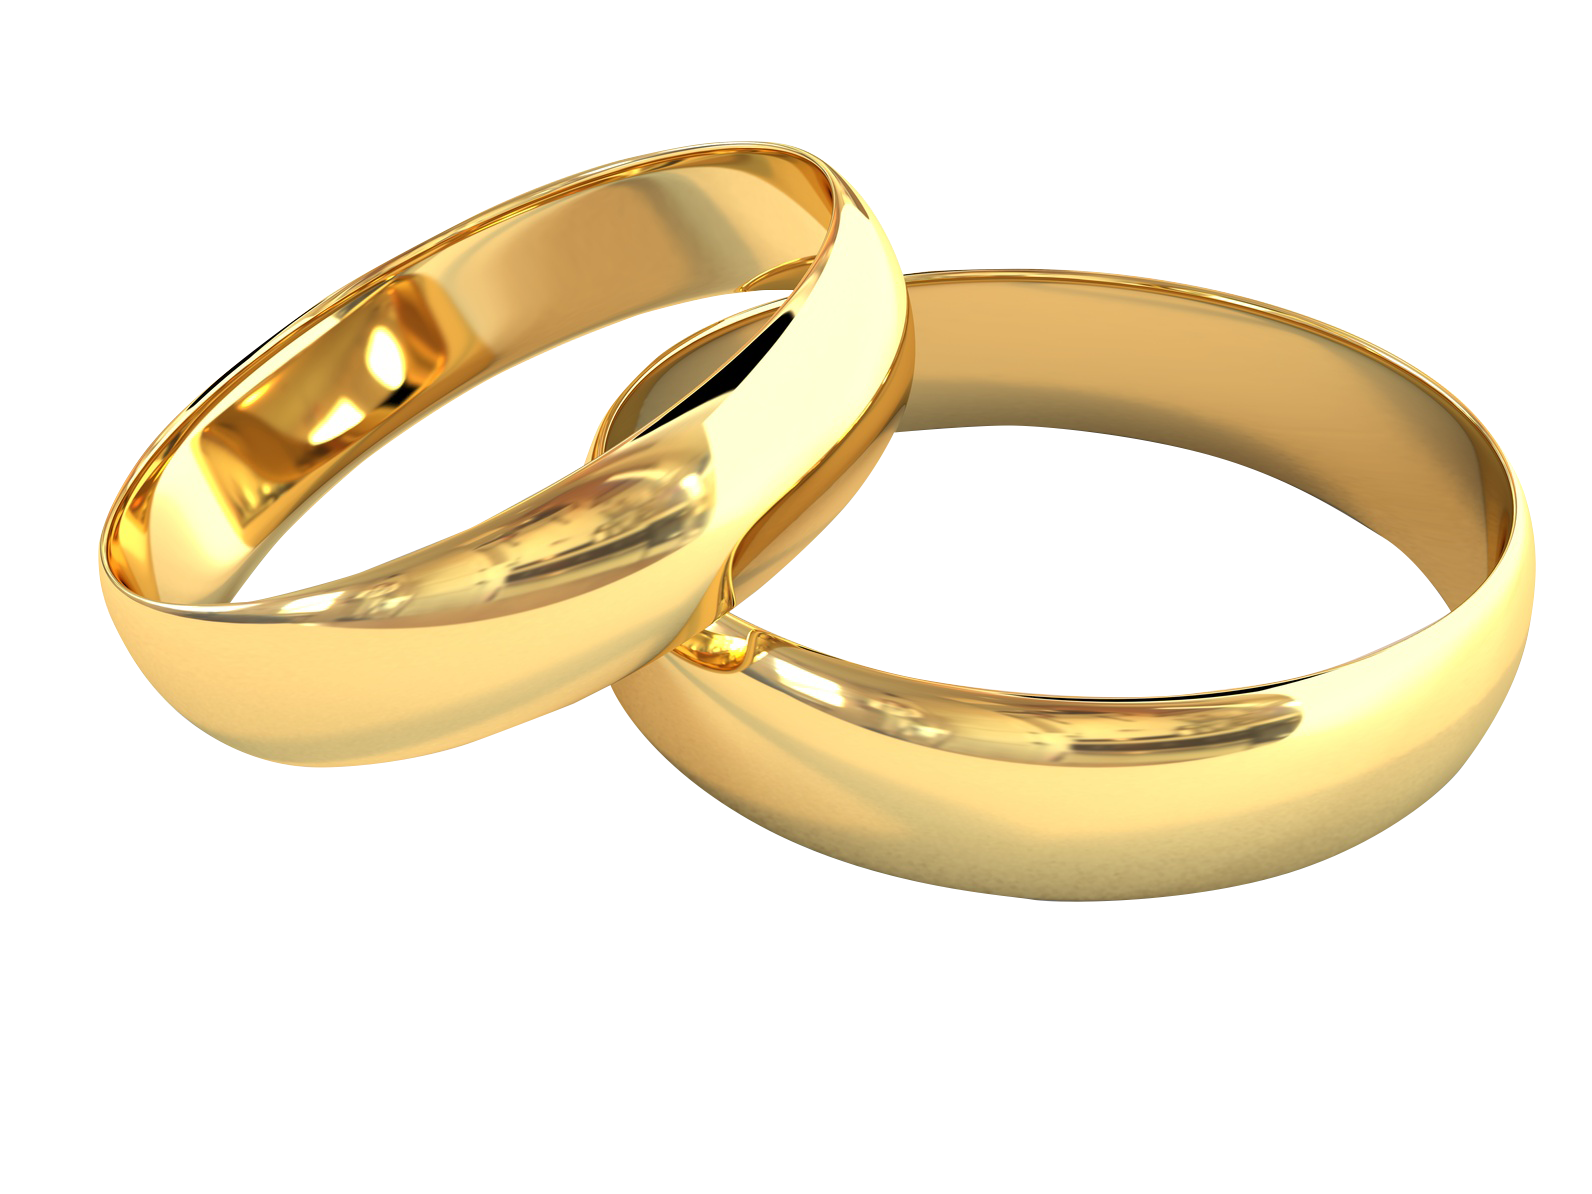 Outstanding Wedding Ring Clip Art 1592 x 1194 · 814 kB · png